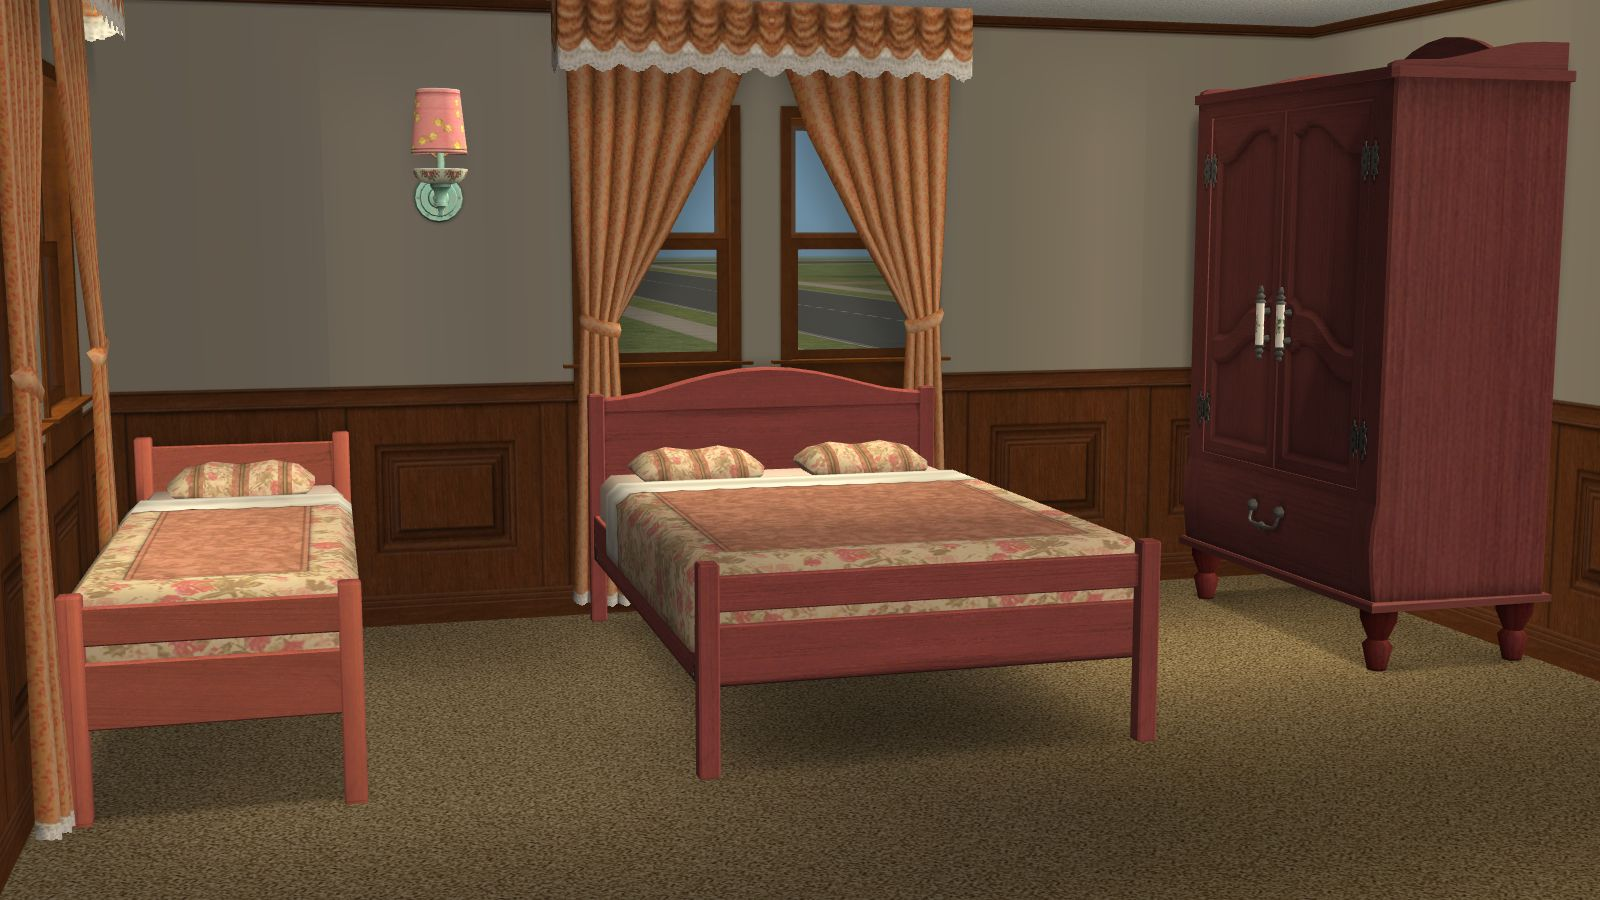 Mod the sims recolors of 2 base game beds matching base for Matching bed and dresser